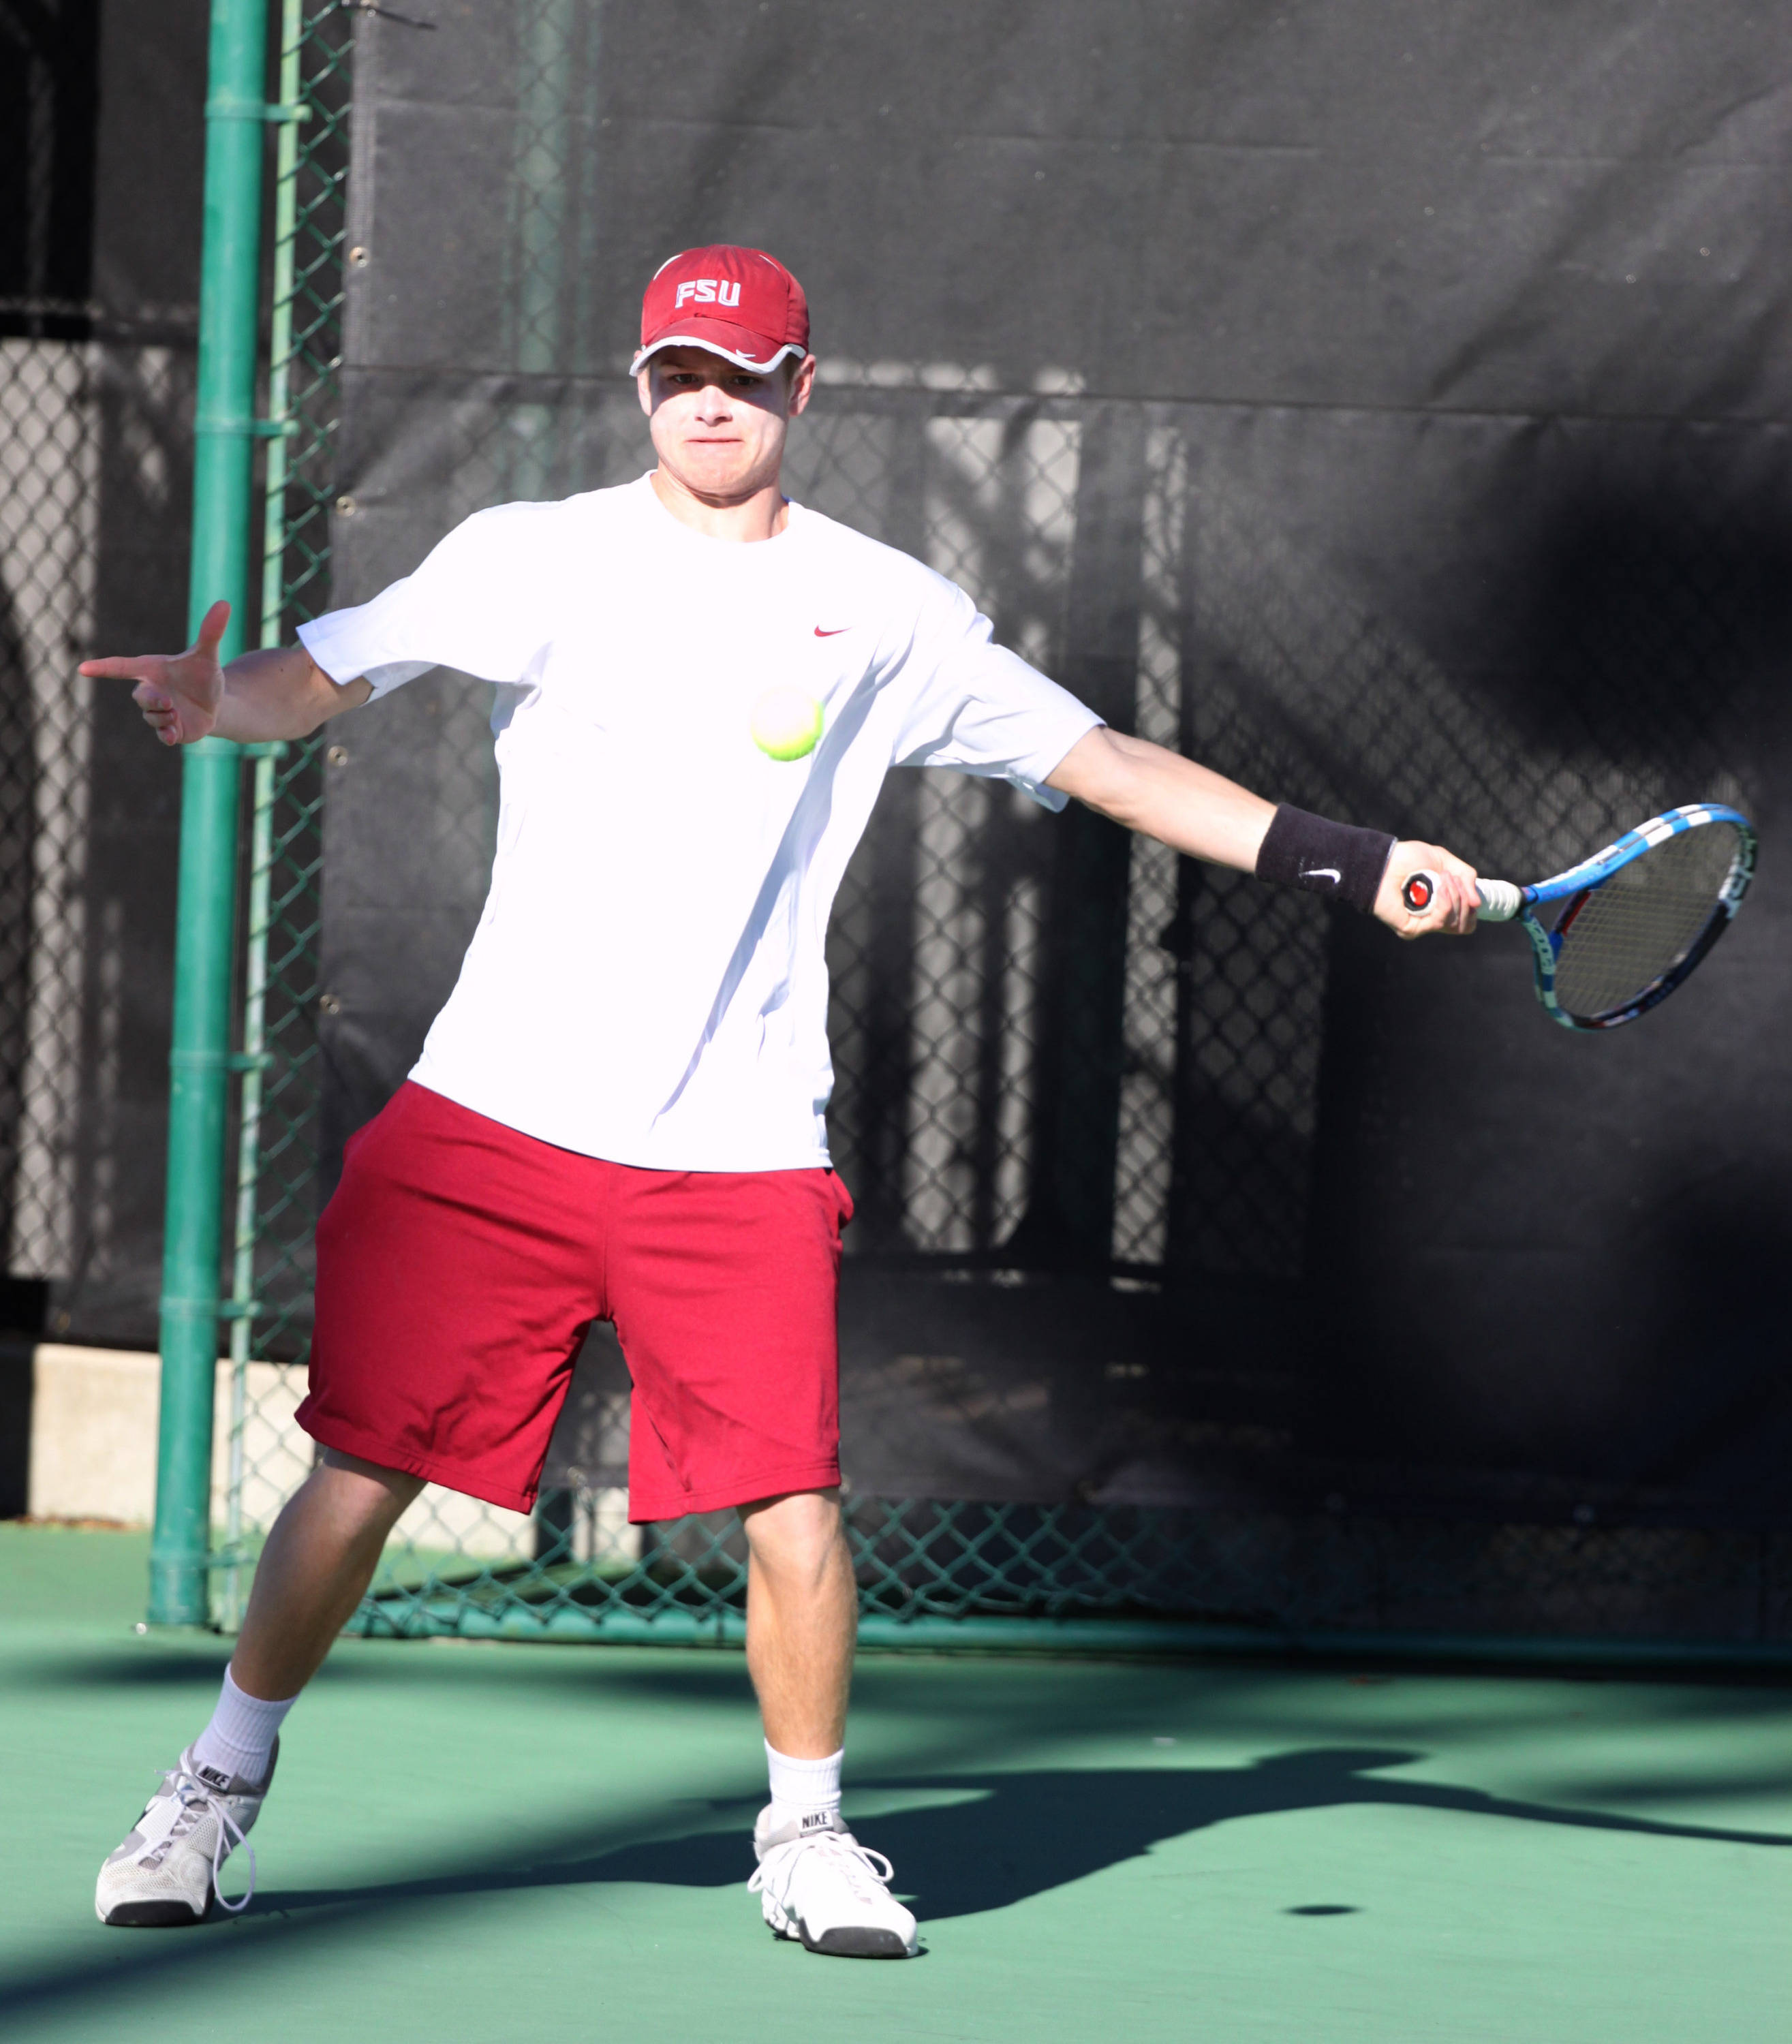 Clint Bowles First Tennis Practice